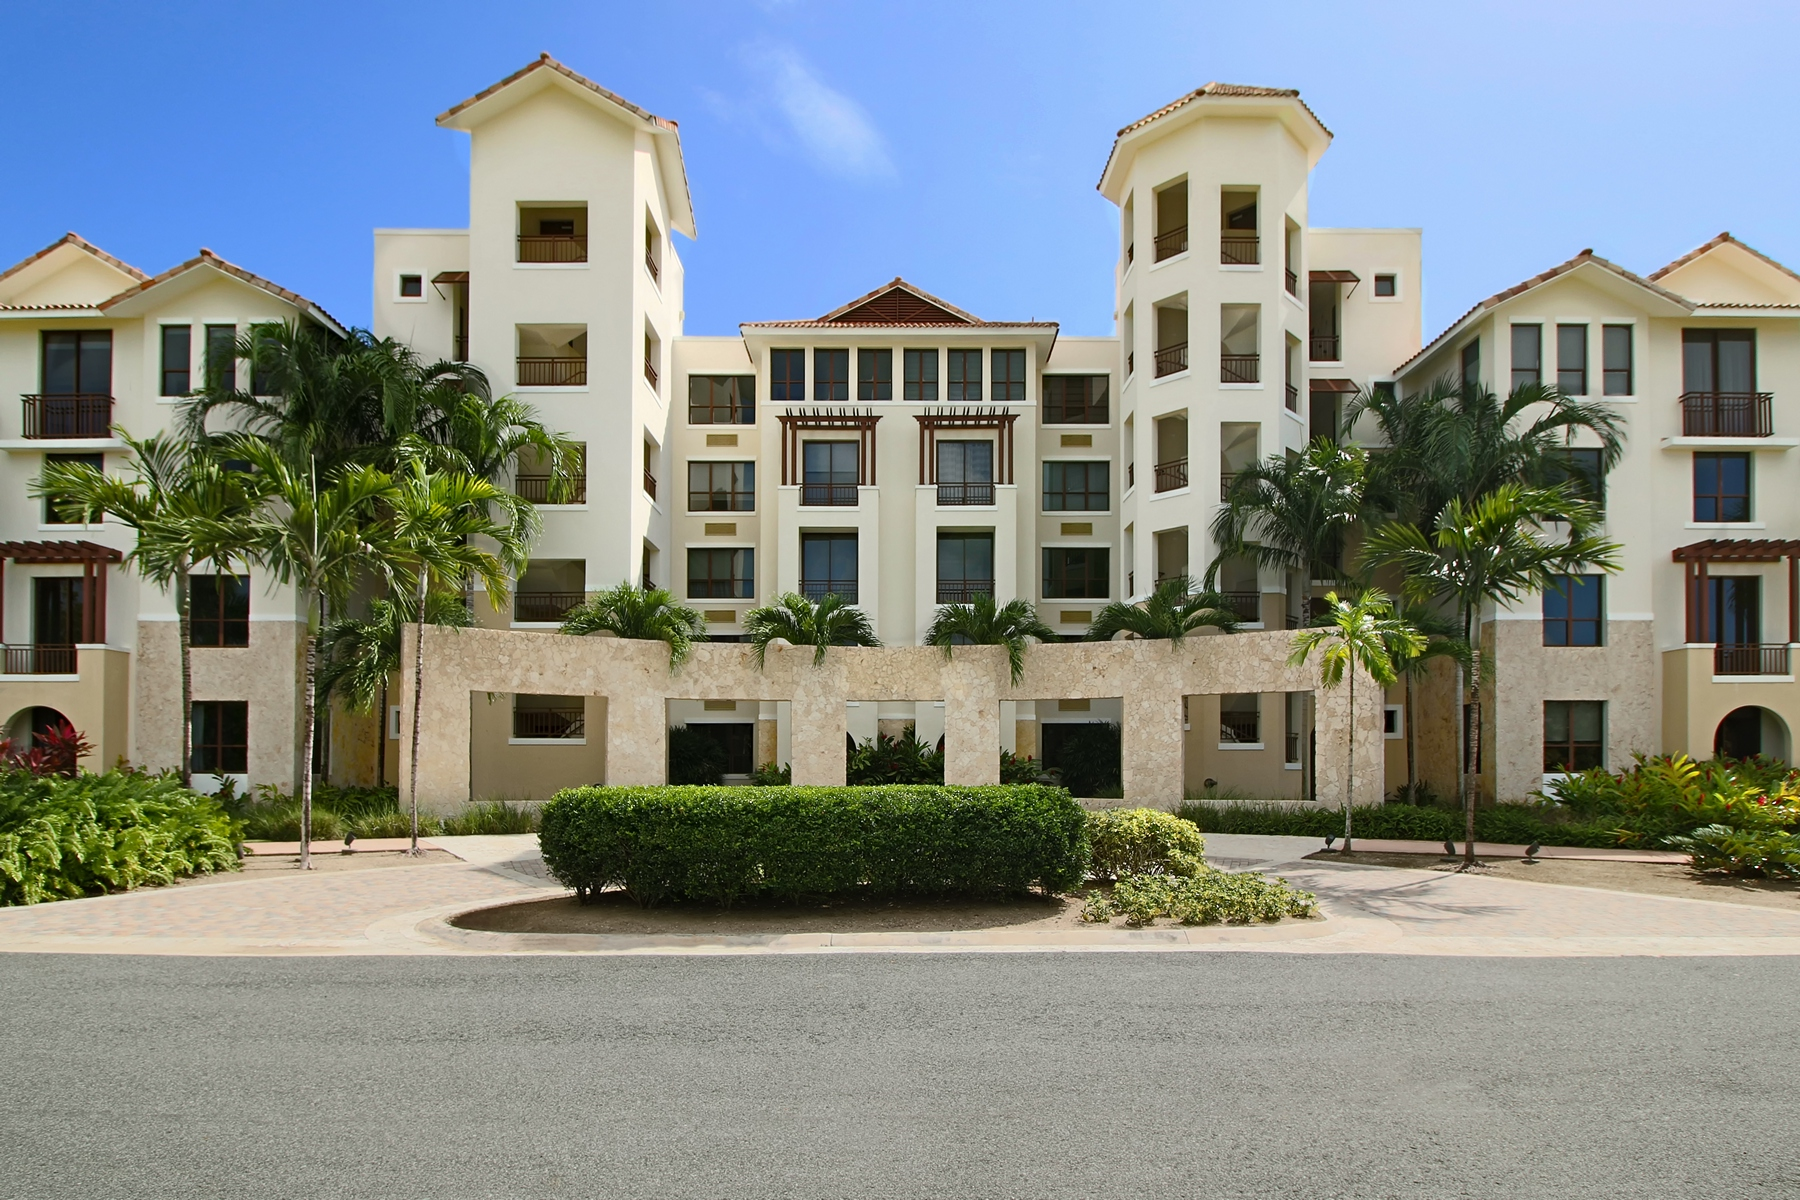 Additional photo for property listing at Residence 131 at 238 Candelero Drive 238 Candelero Drive, Apt 131 Solarea Beach Resort and Yacht Club Palmas Del Mar, 00791 푸에르토리코